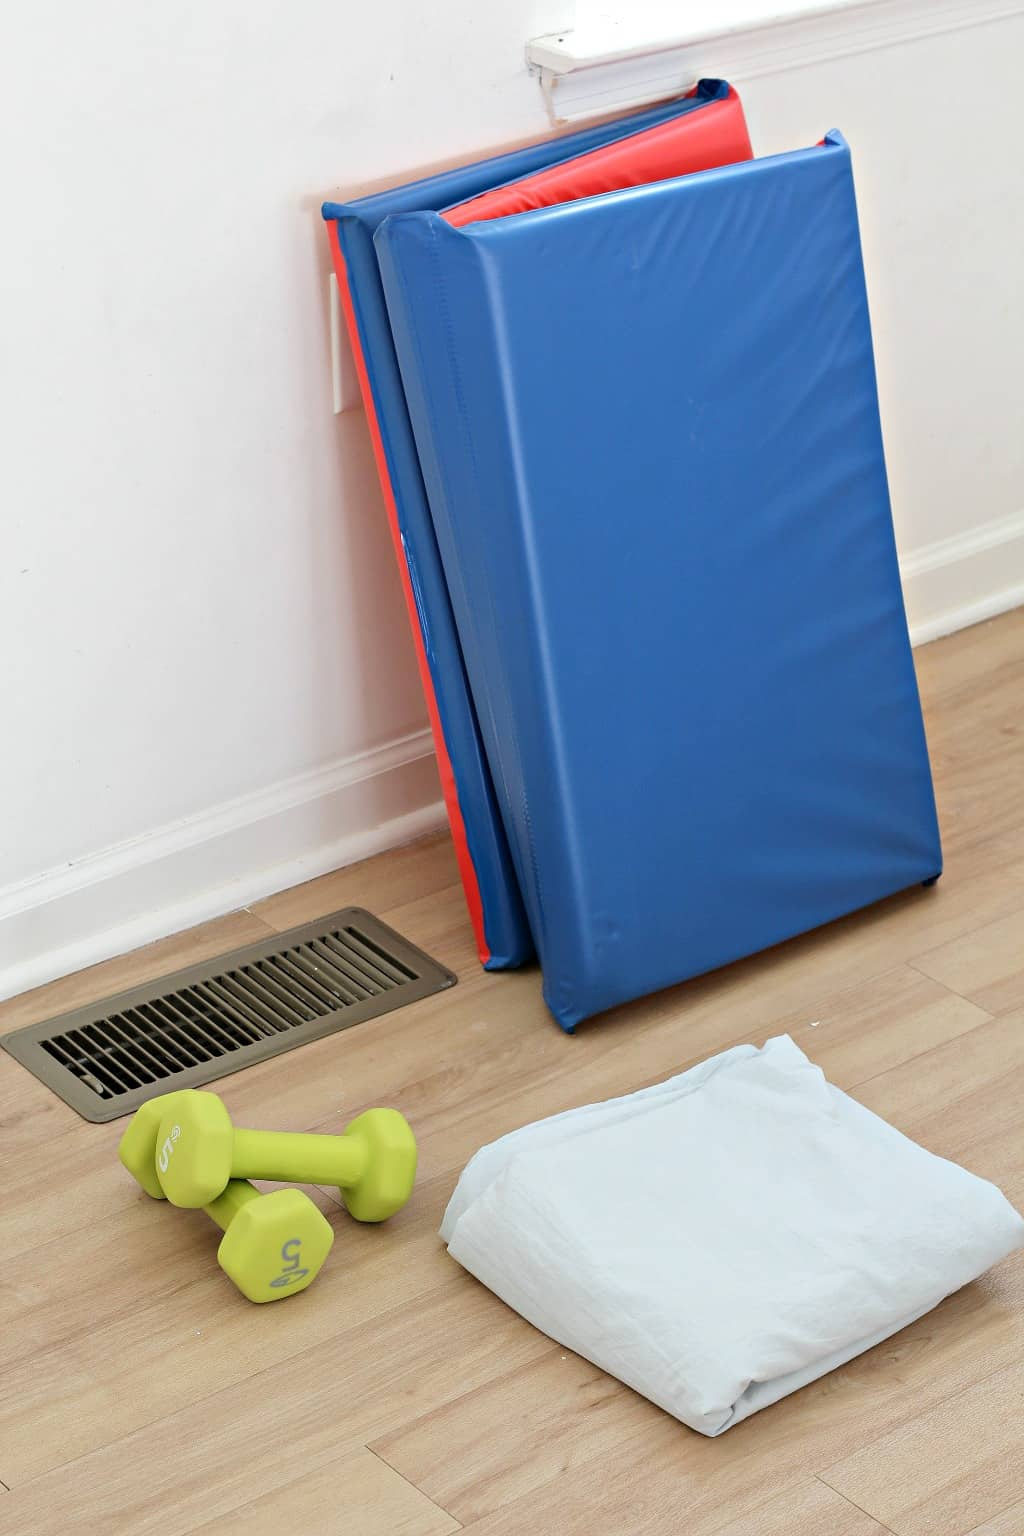 Supplies for making a DIY air fort tent at home, including sheet and play mat.